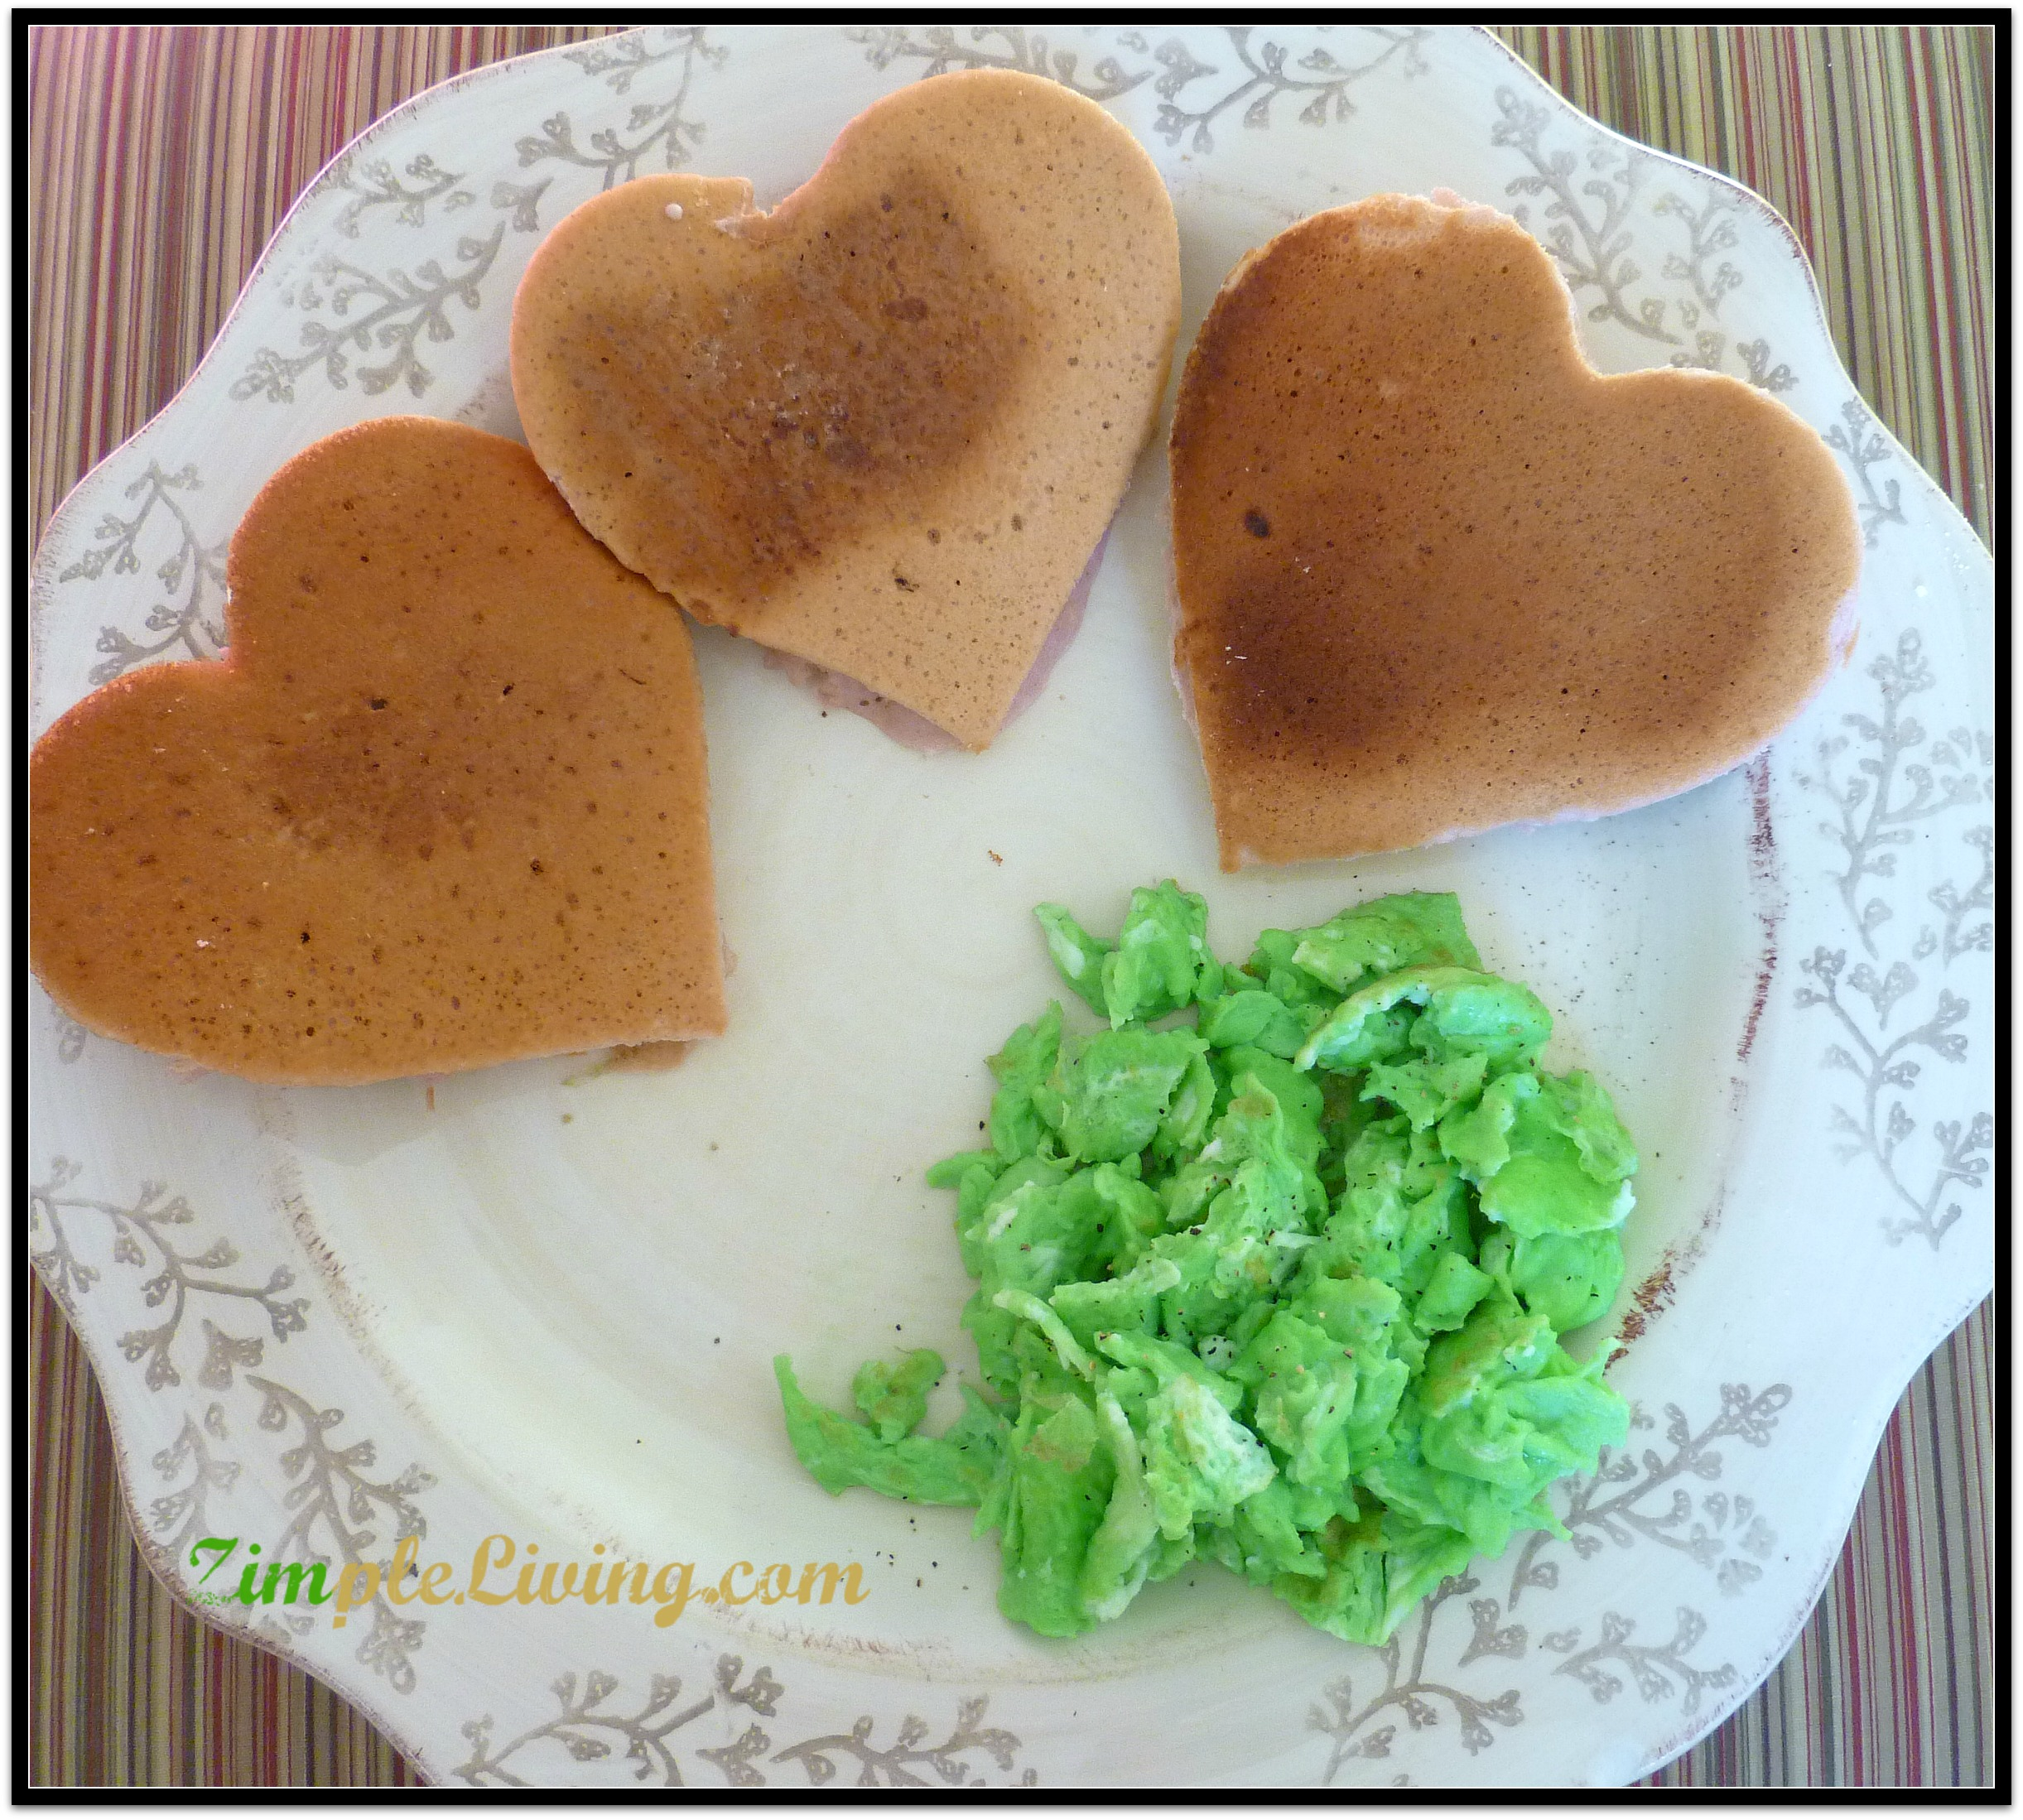 Easy Peasy Recipezy – Heart Pancakes and Green Eggs